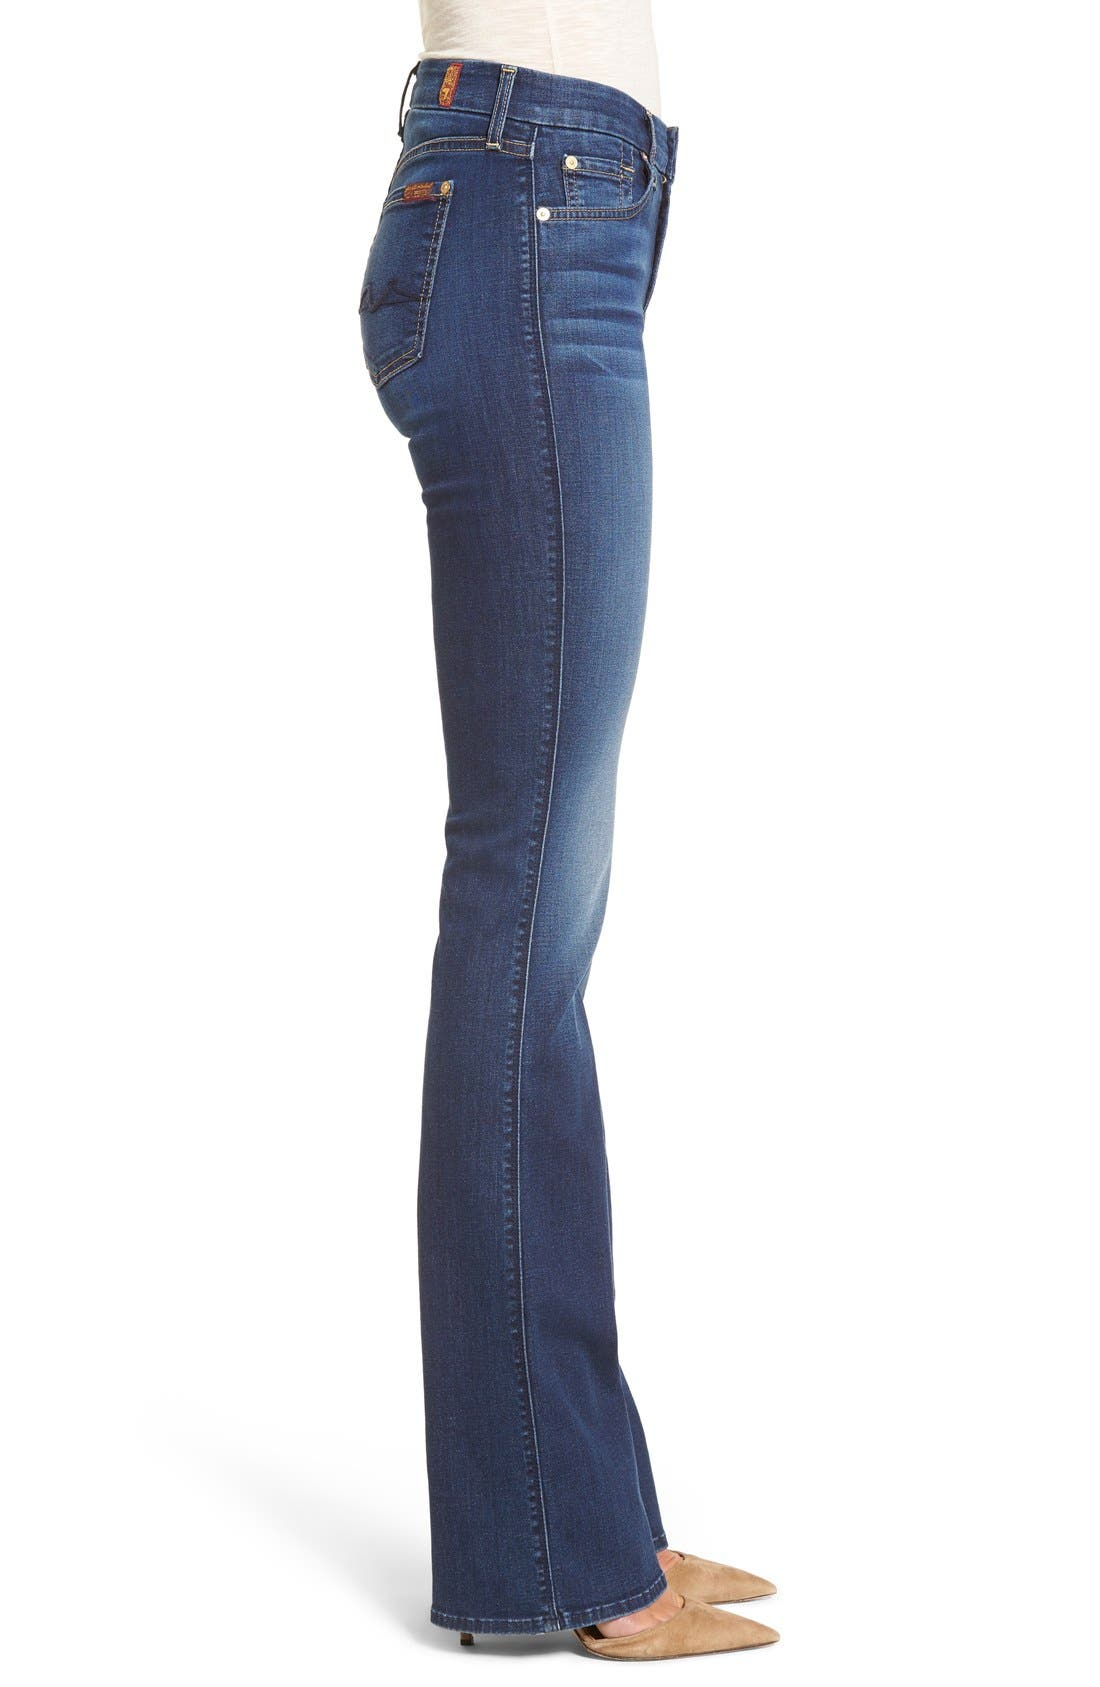 b(air) - Kimmie Bootcut Jeans,                             Alternate thumbnail 7, color,